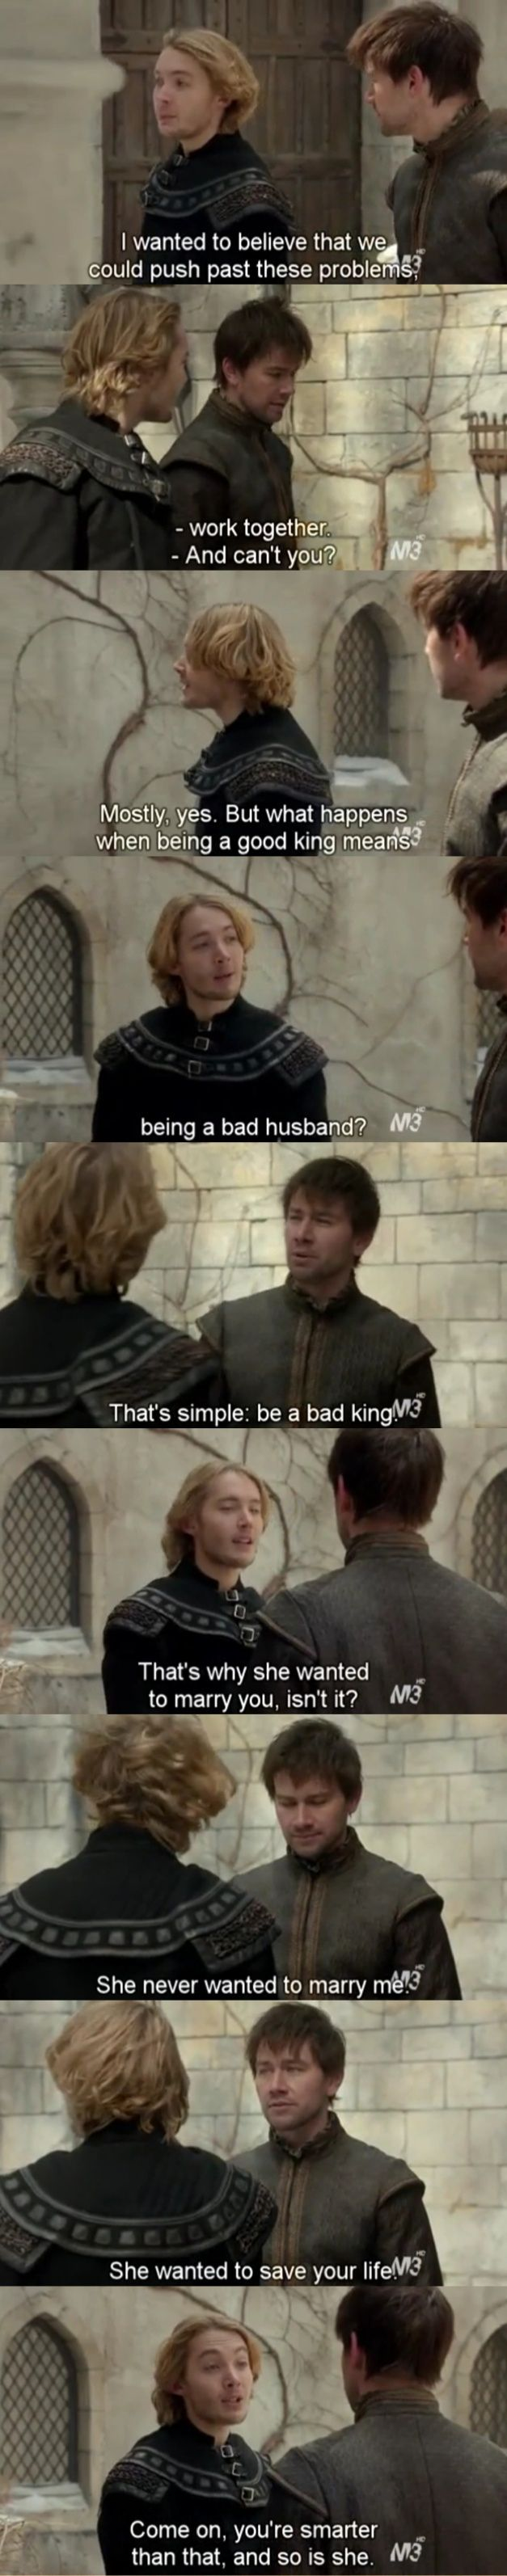 Reign 1x18 Bash ( Torrance Coombs )and Francis ( Toby Regbo ) •That's also why i support Mash❤️ / Pinterest-> @leooonitaa